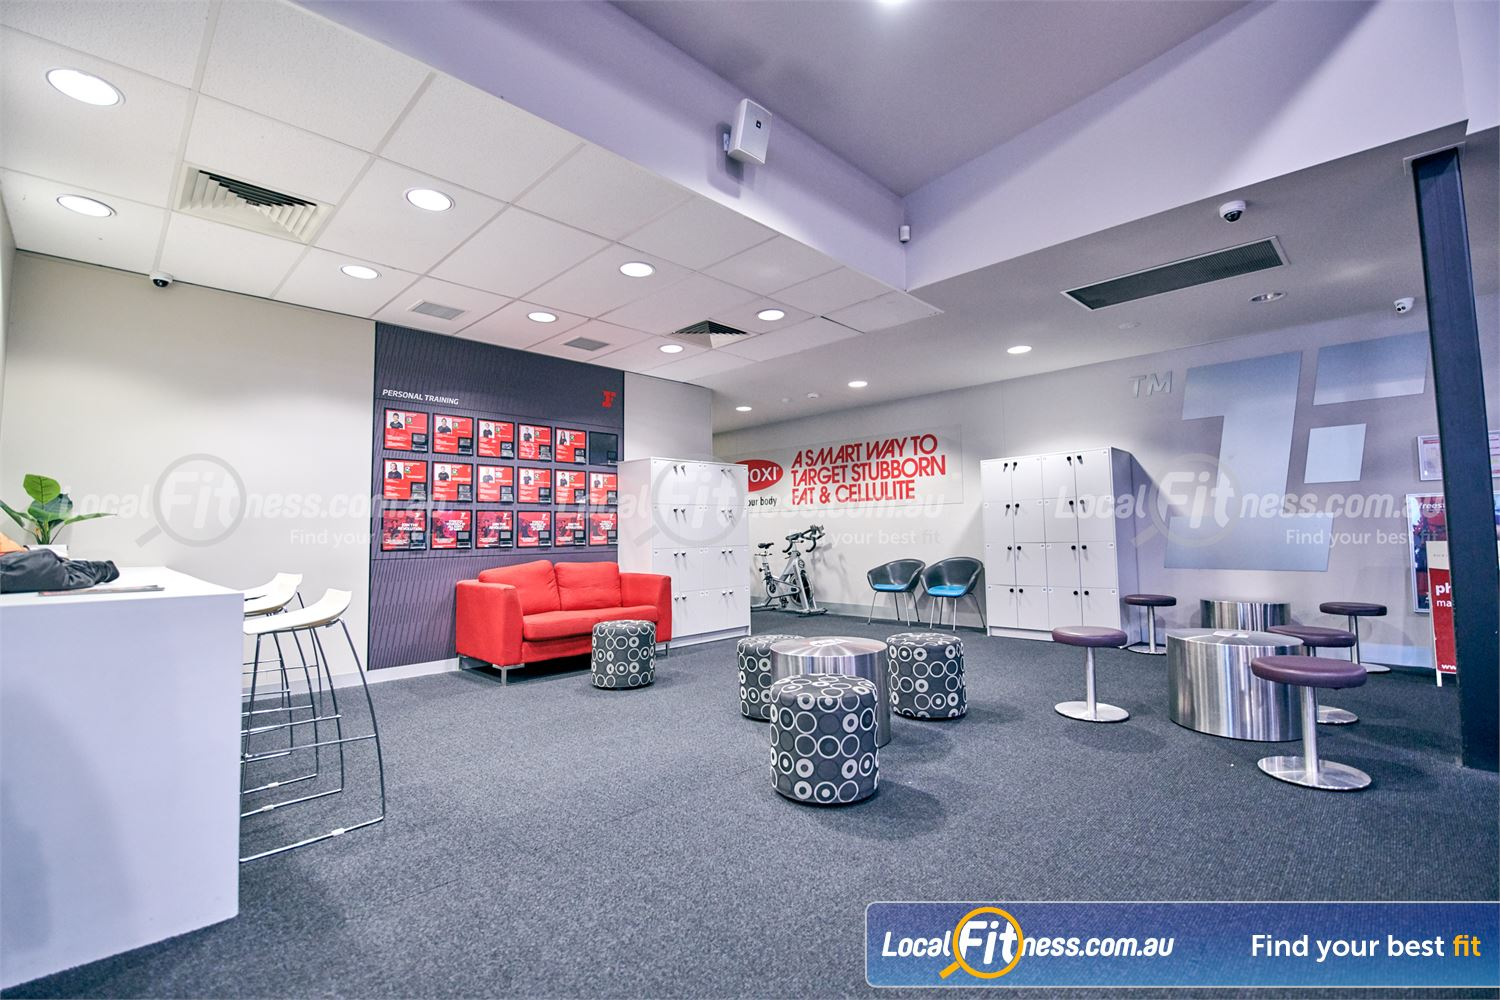 Fitness First Near Burwood East The comfortable members lounge area at Fitness First Glen Waverley.